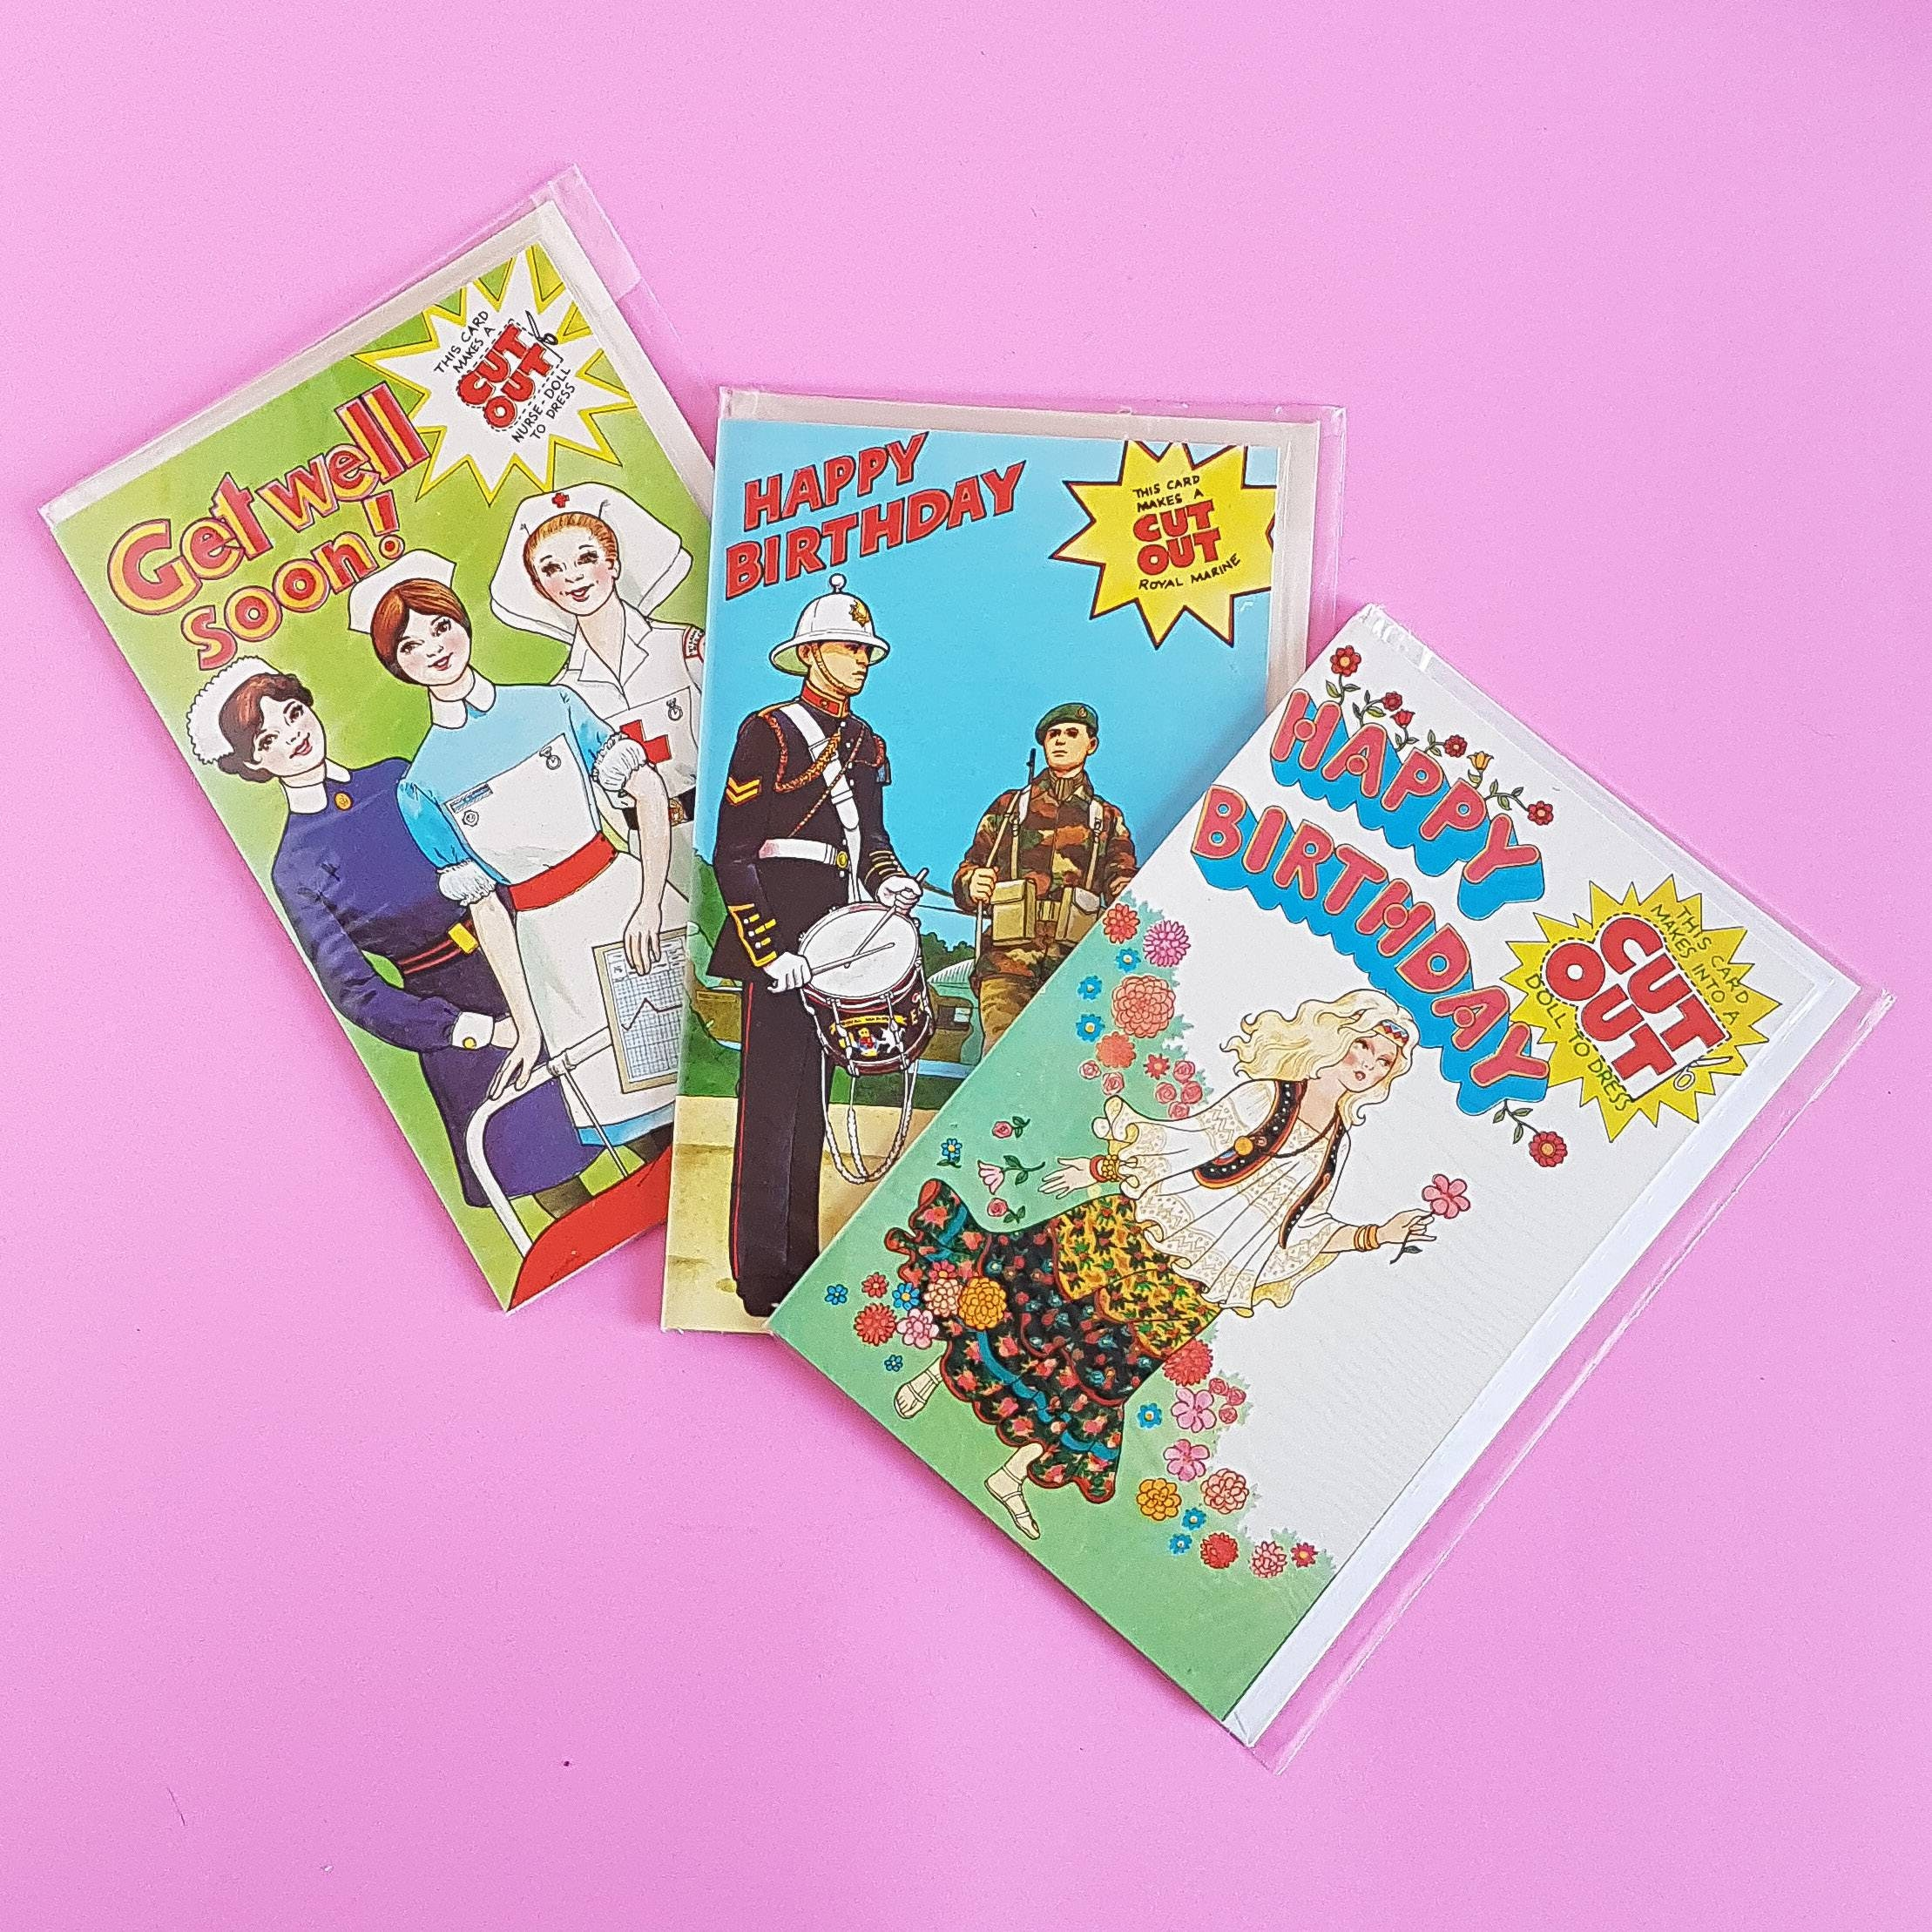 Vintage Greeting Cards From The 1970s Cut Out Doll